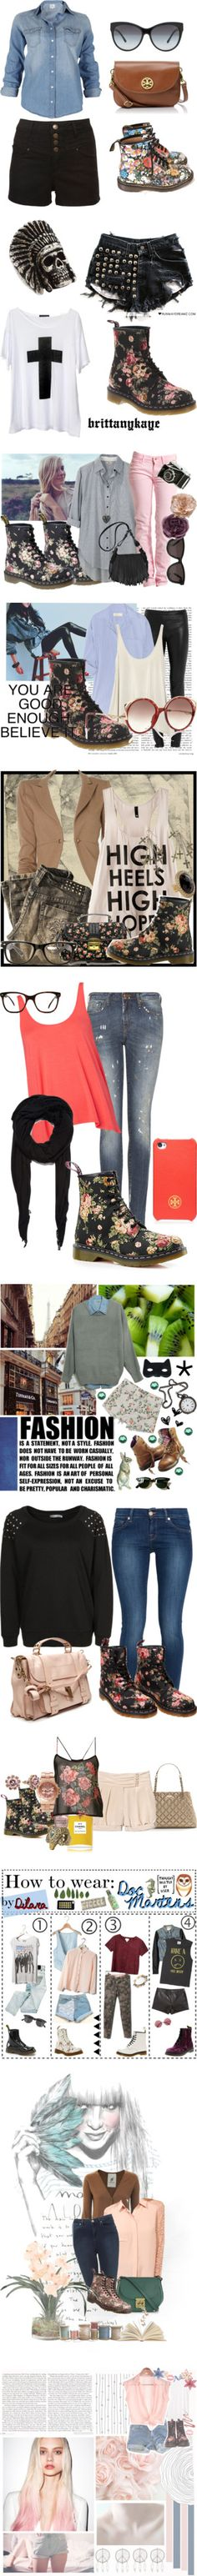 """""""Floral docs outfits"""" by limitlessillusions ❤ liked on Polyvore"""